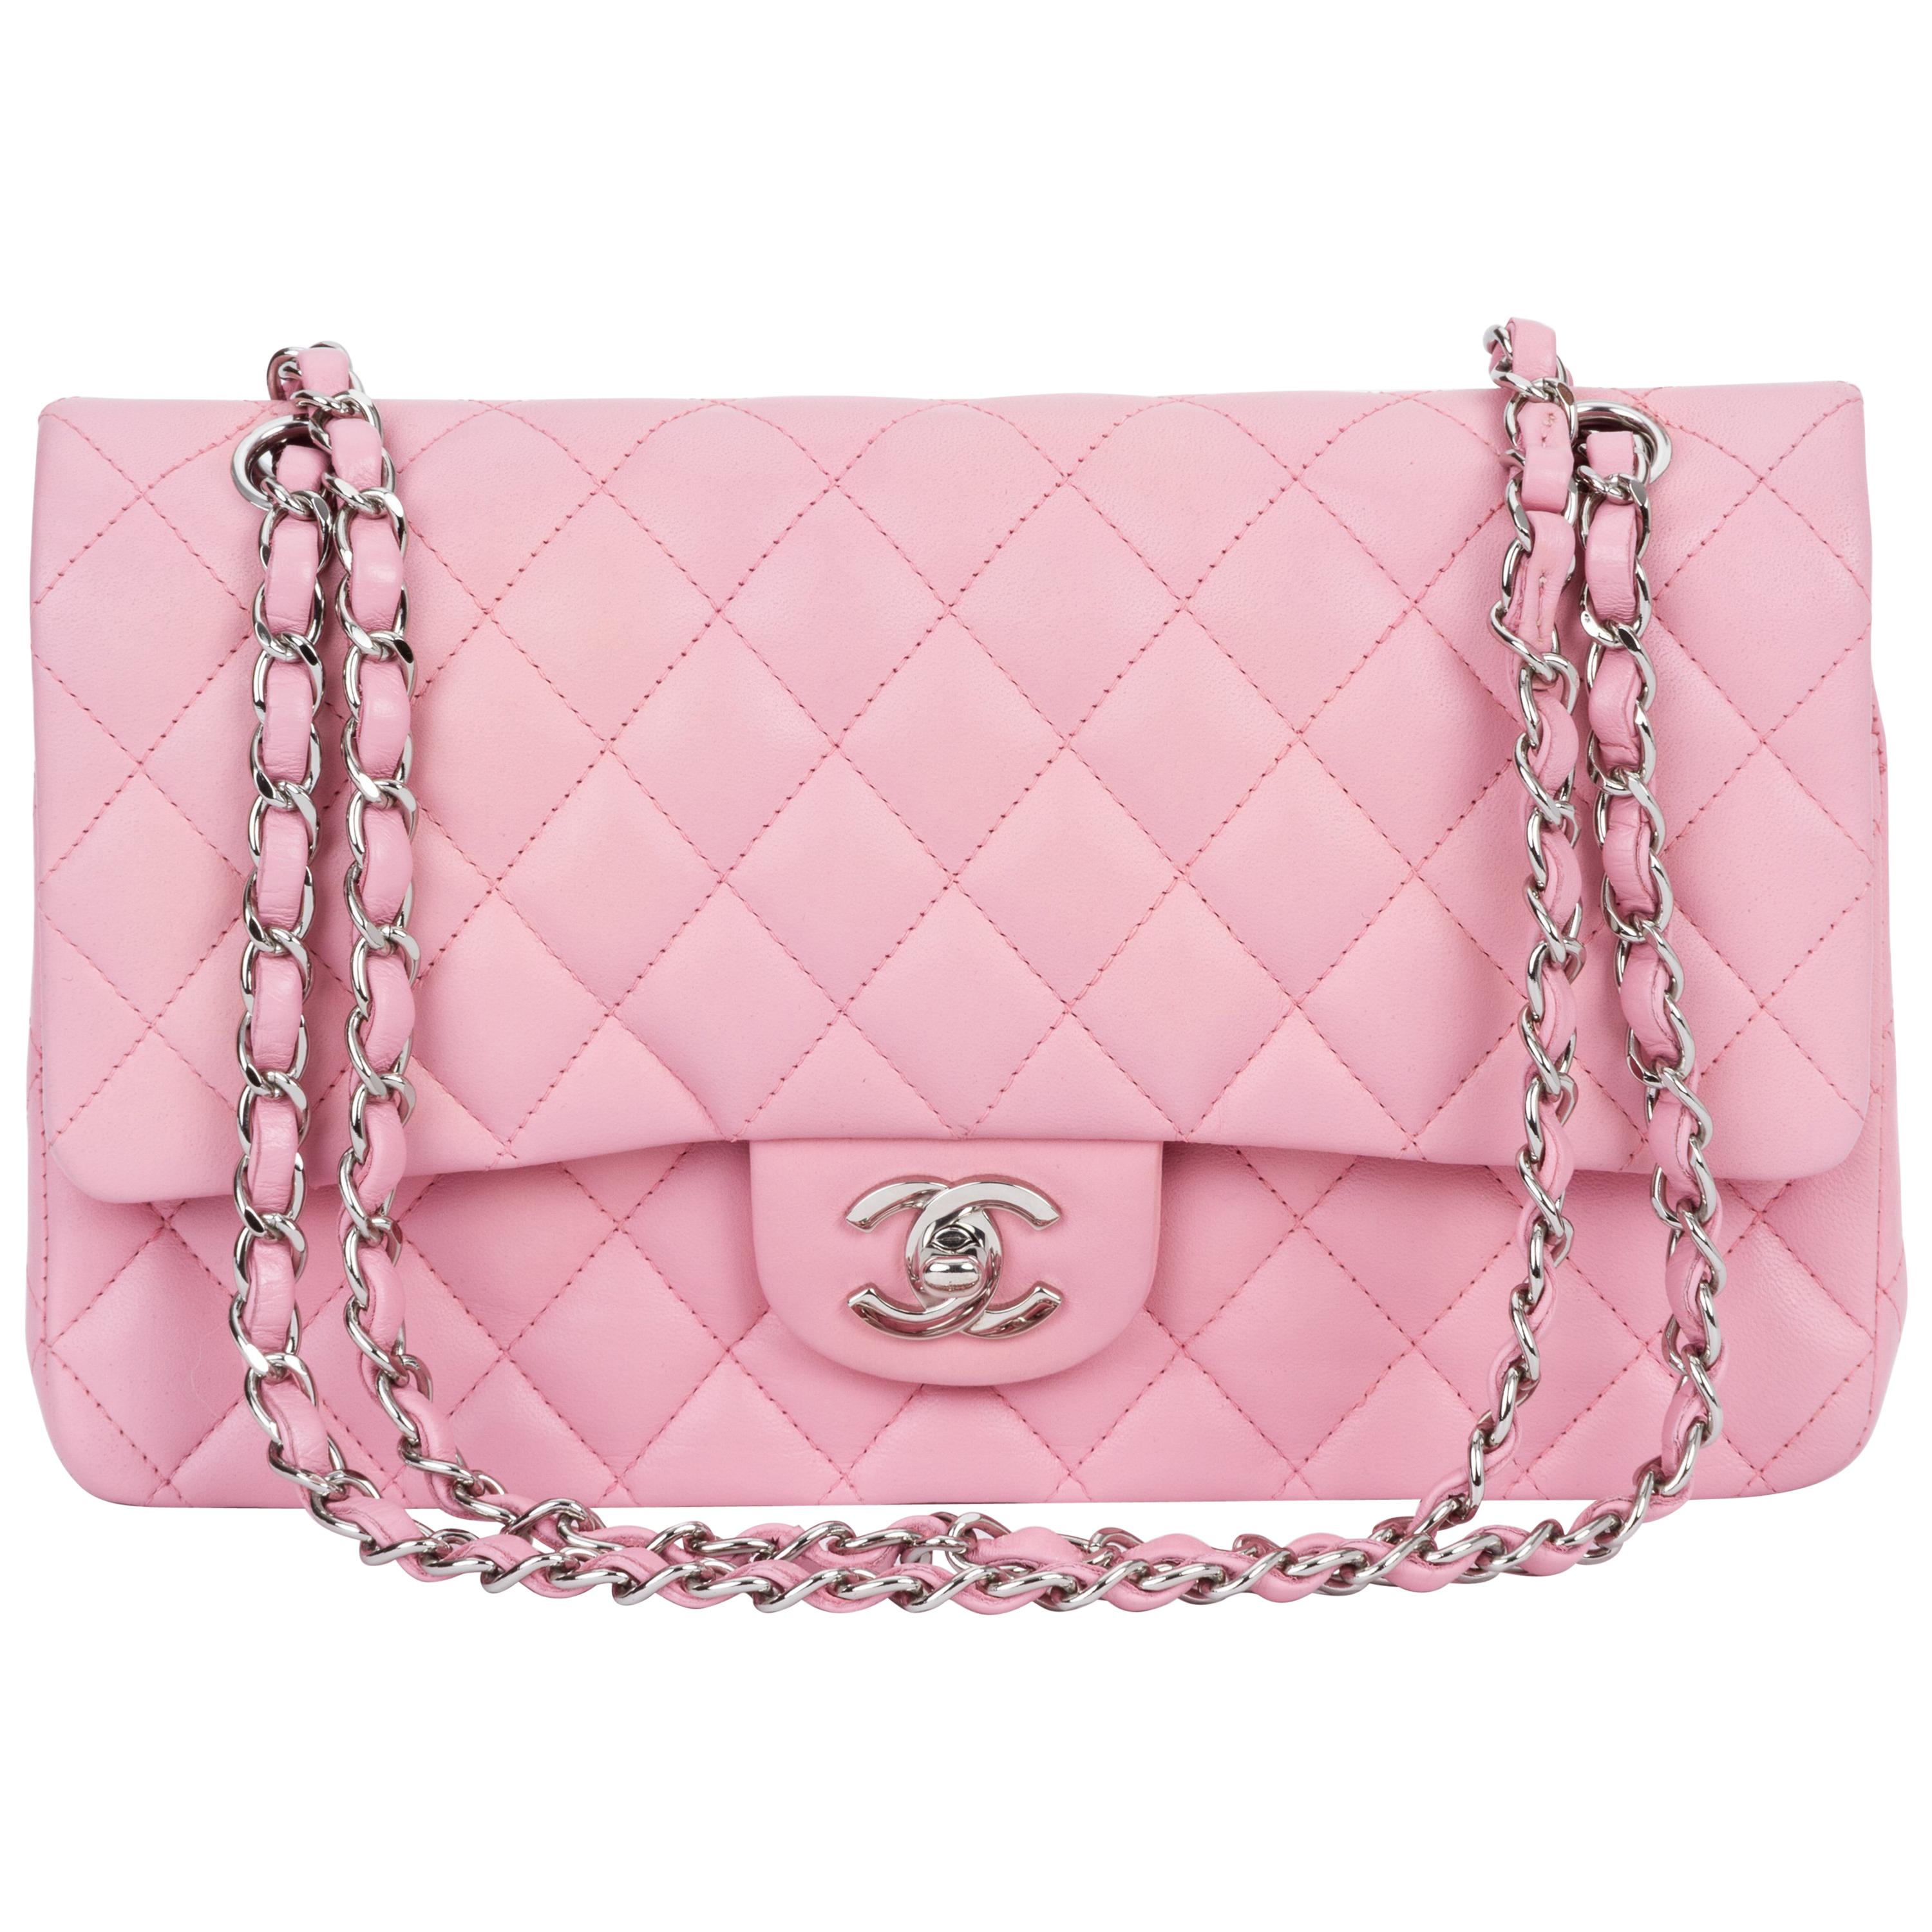 Chanel Bubblegum Pink 10 Double Flap Bag At 1stdibs